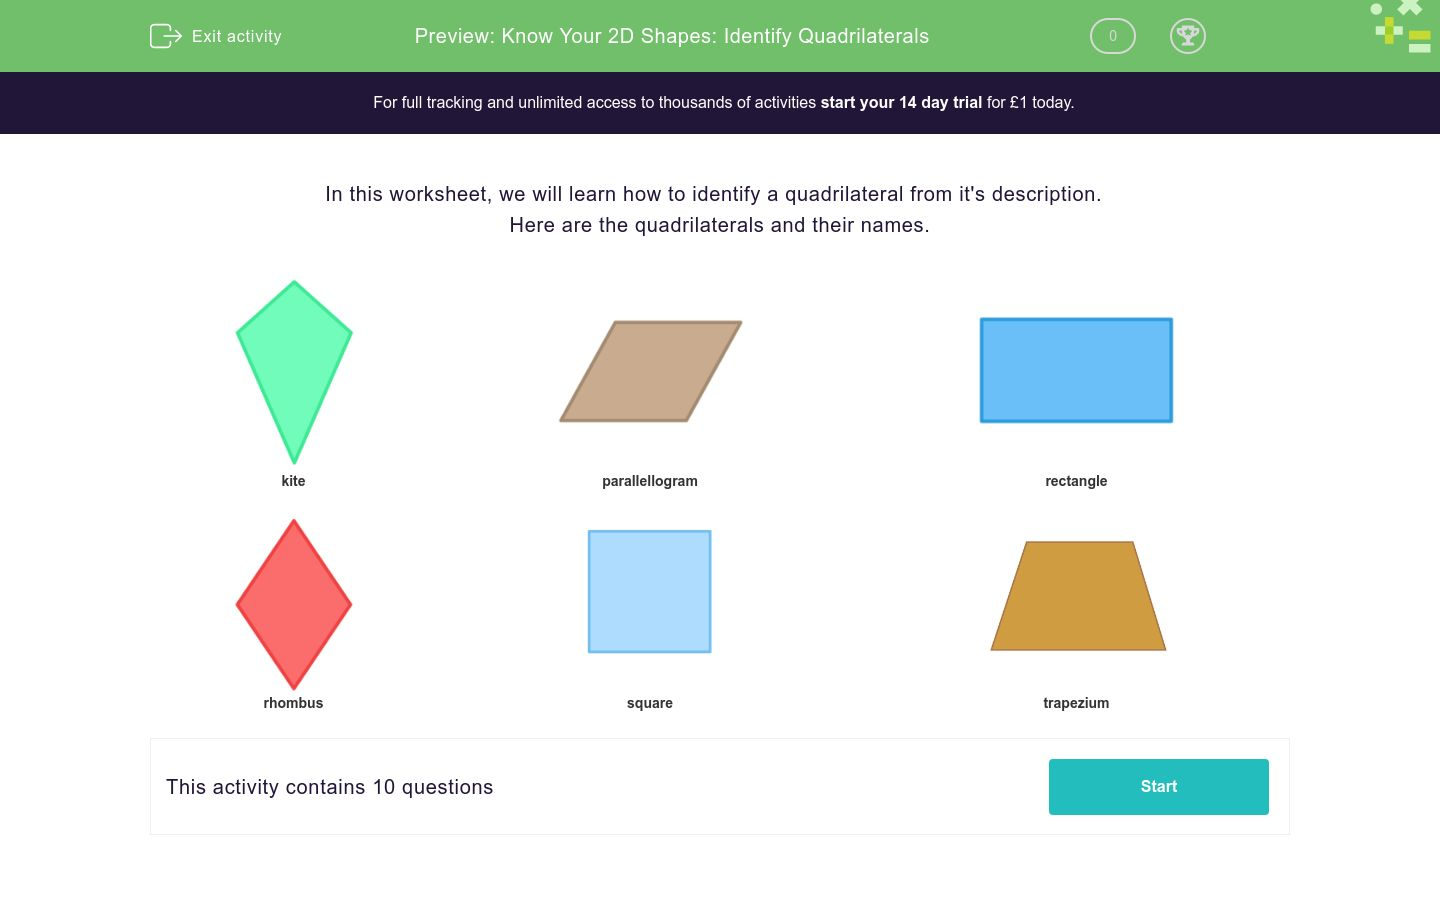 'Know Your 2D Shapes: Identify Quadrilaterals' worksheet